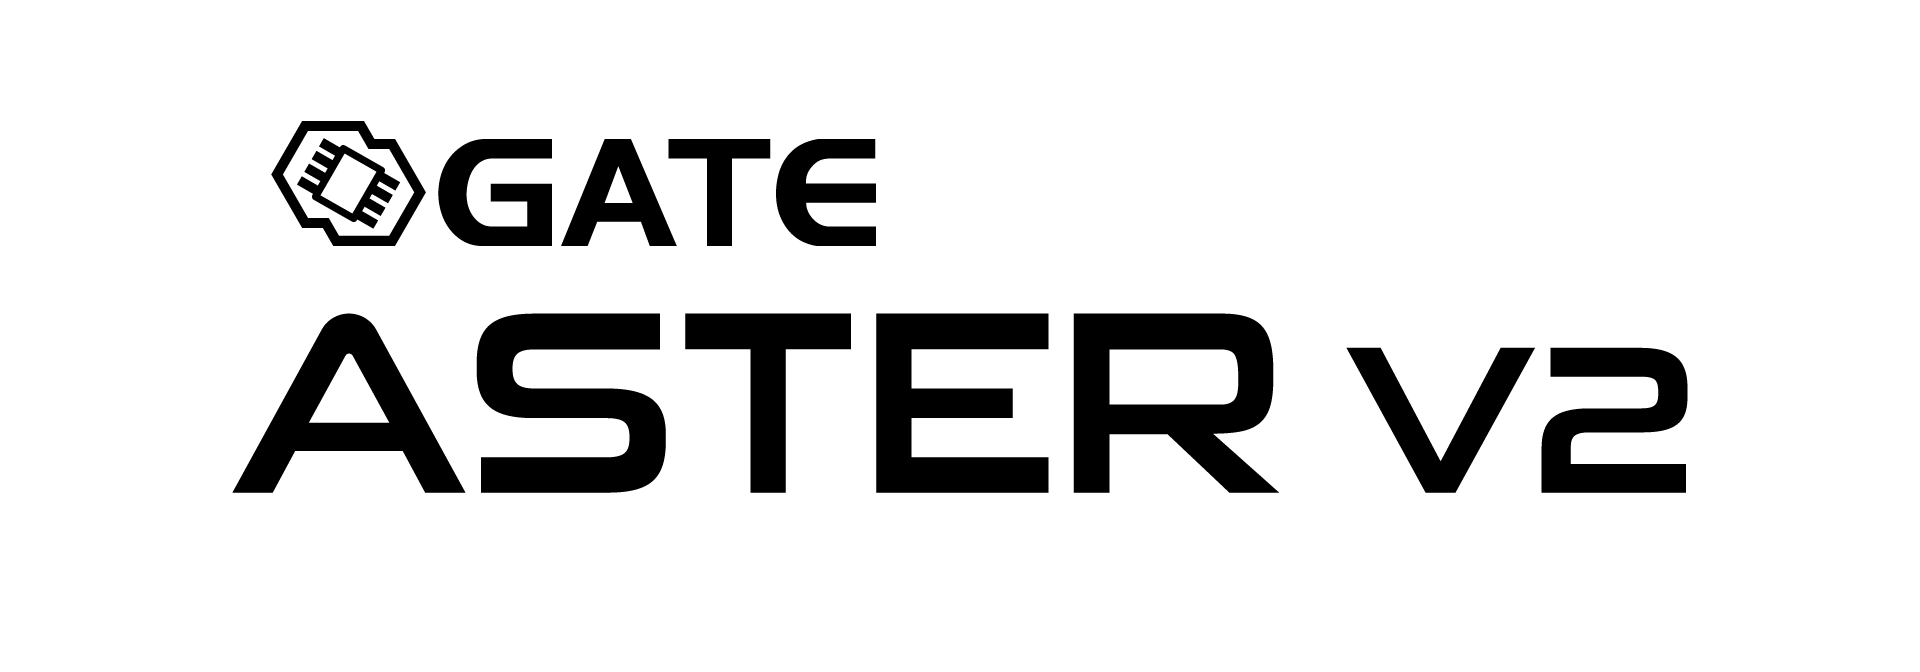 logo-gate-aster-v2-black-on-transparent.png